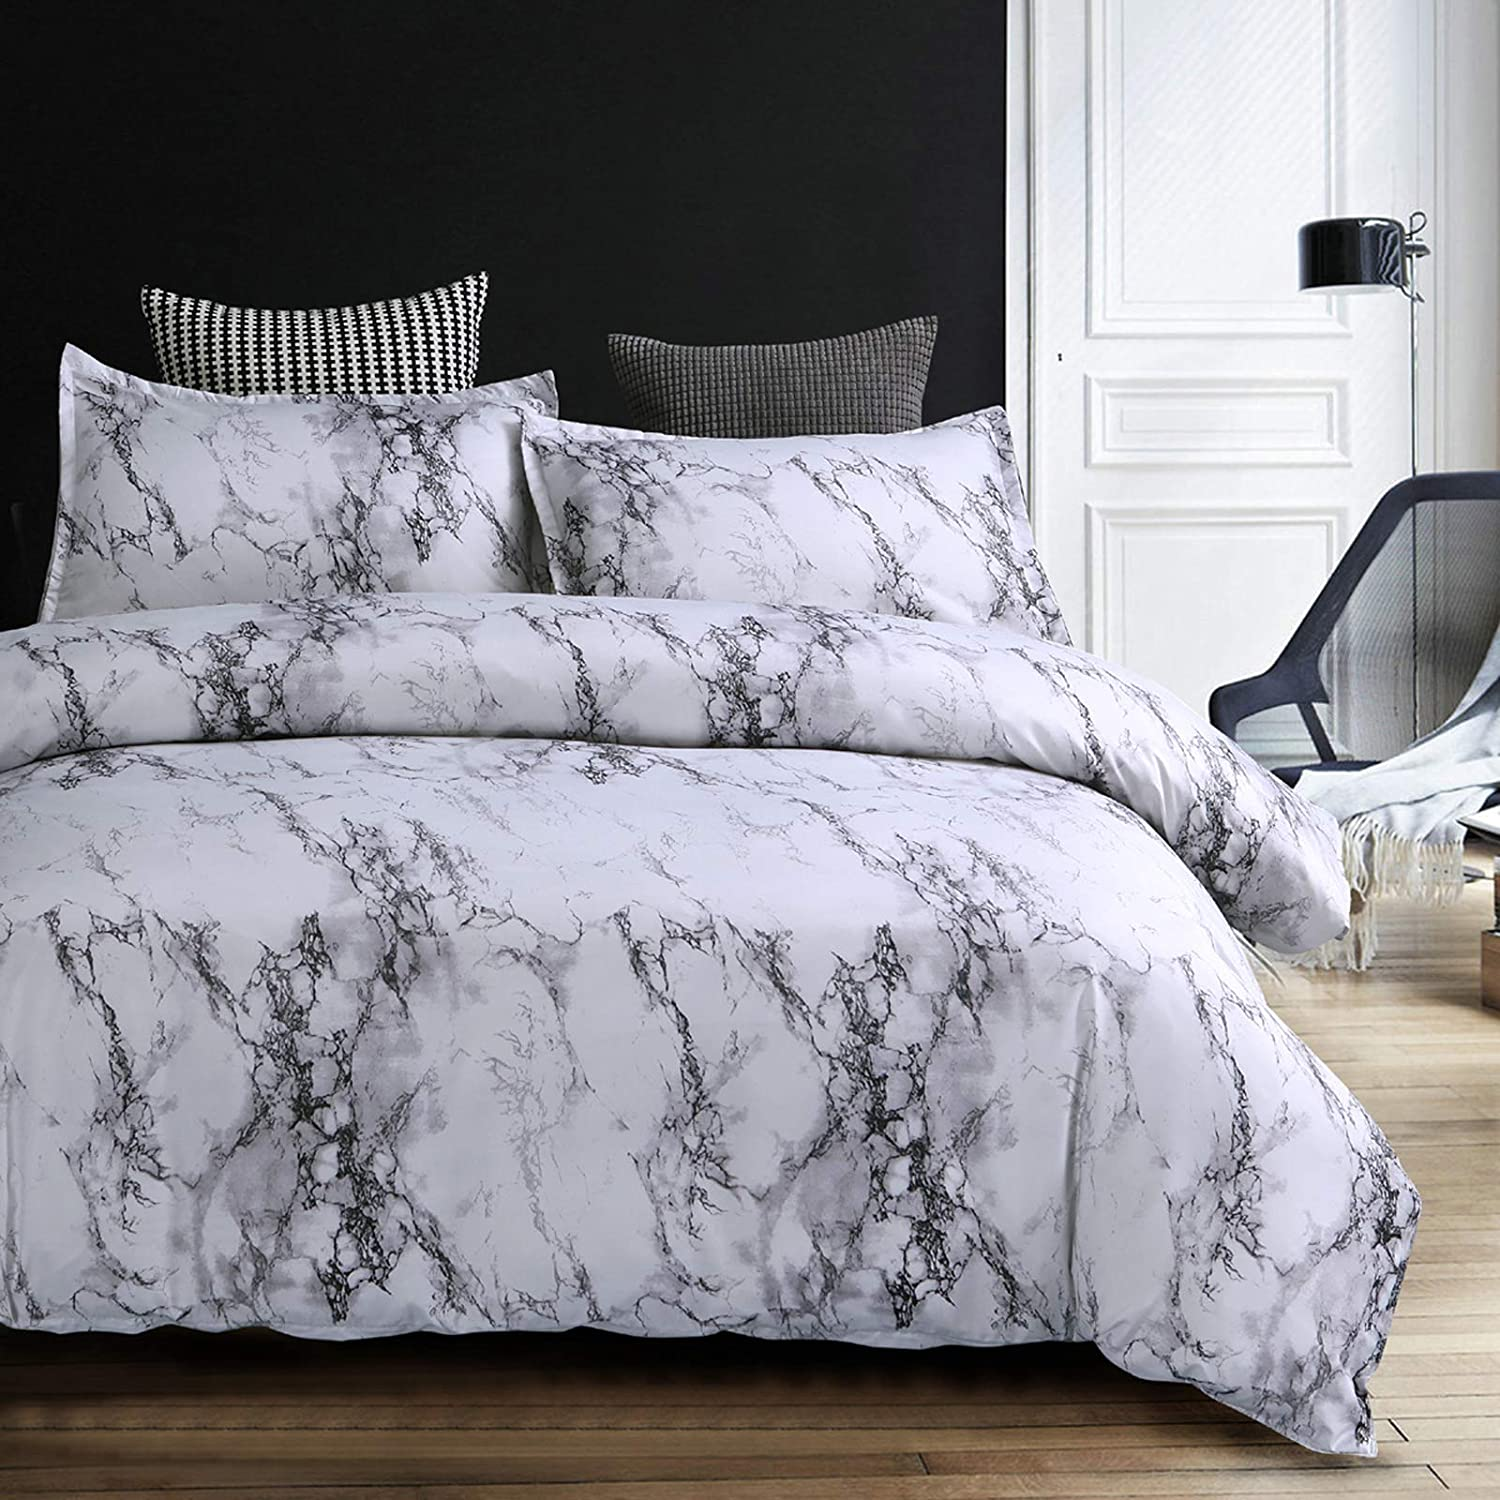 Mengersi Marble Duvet Cover Set Twin Size Bedding Set Gray White Black Color 2 Pieces 1 Duvet Cover 1 Pillow Sham Kitchen Dining